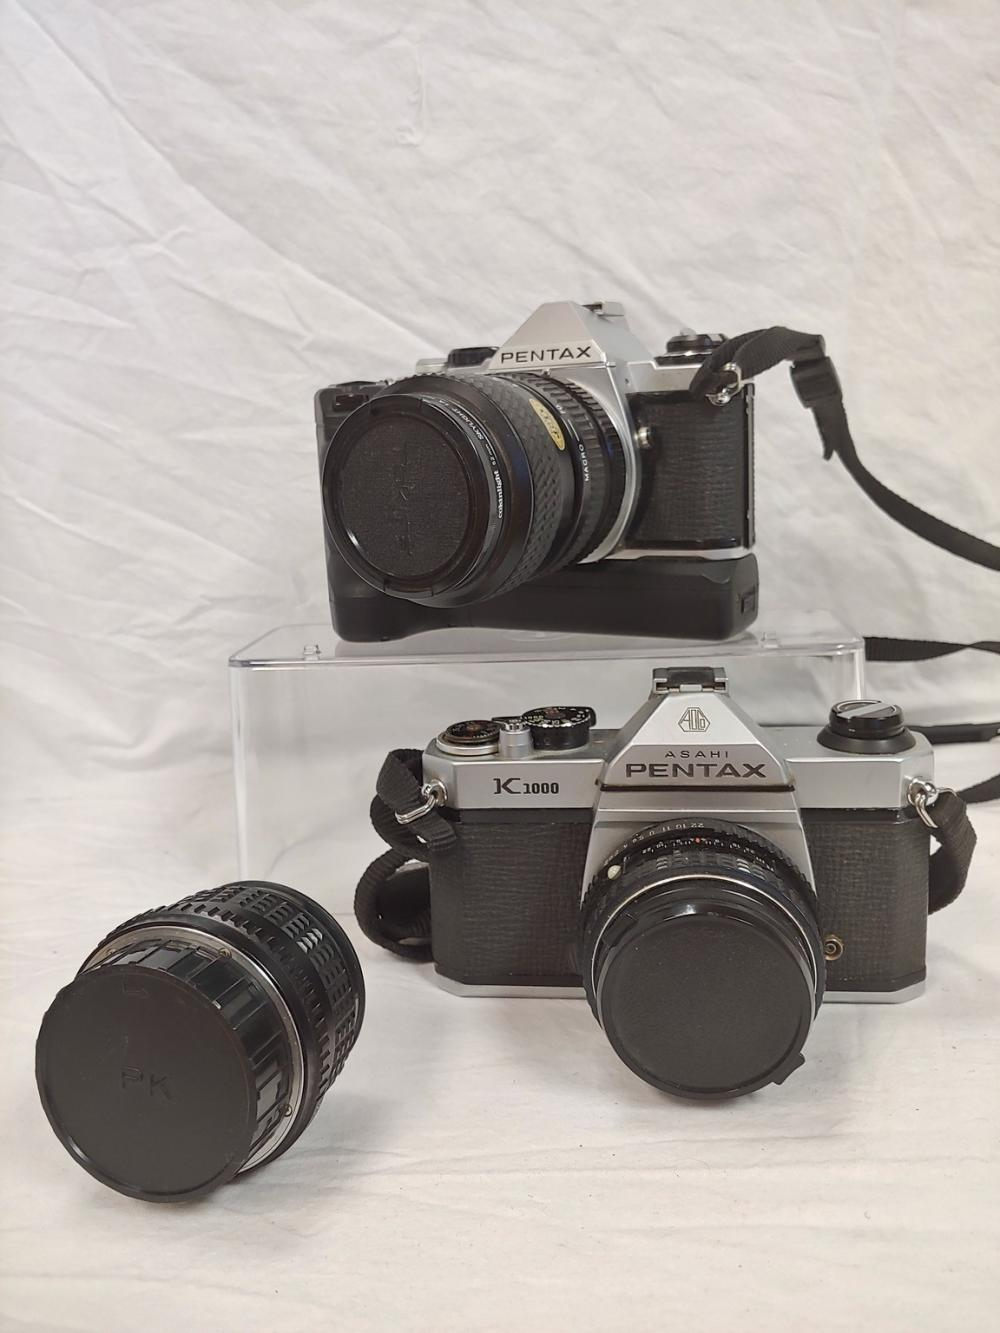 Two Pentax cameras